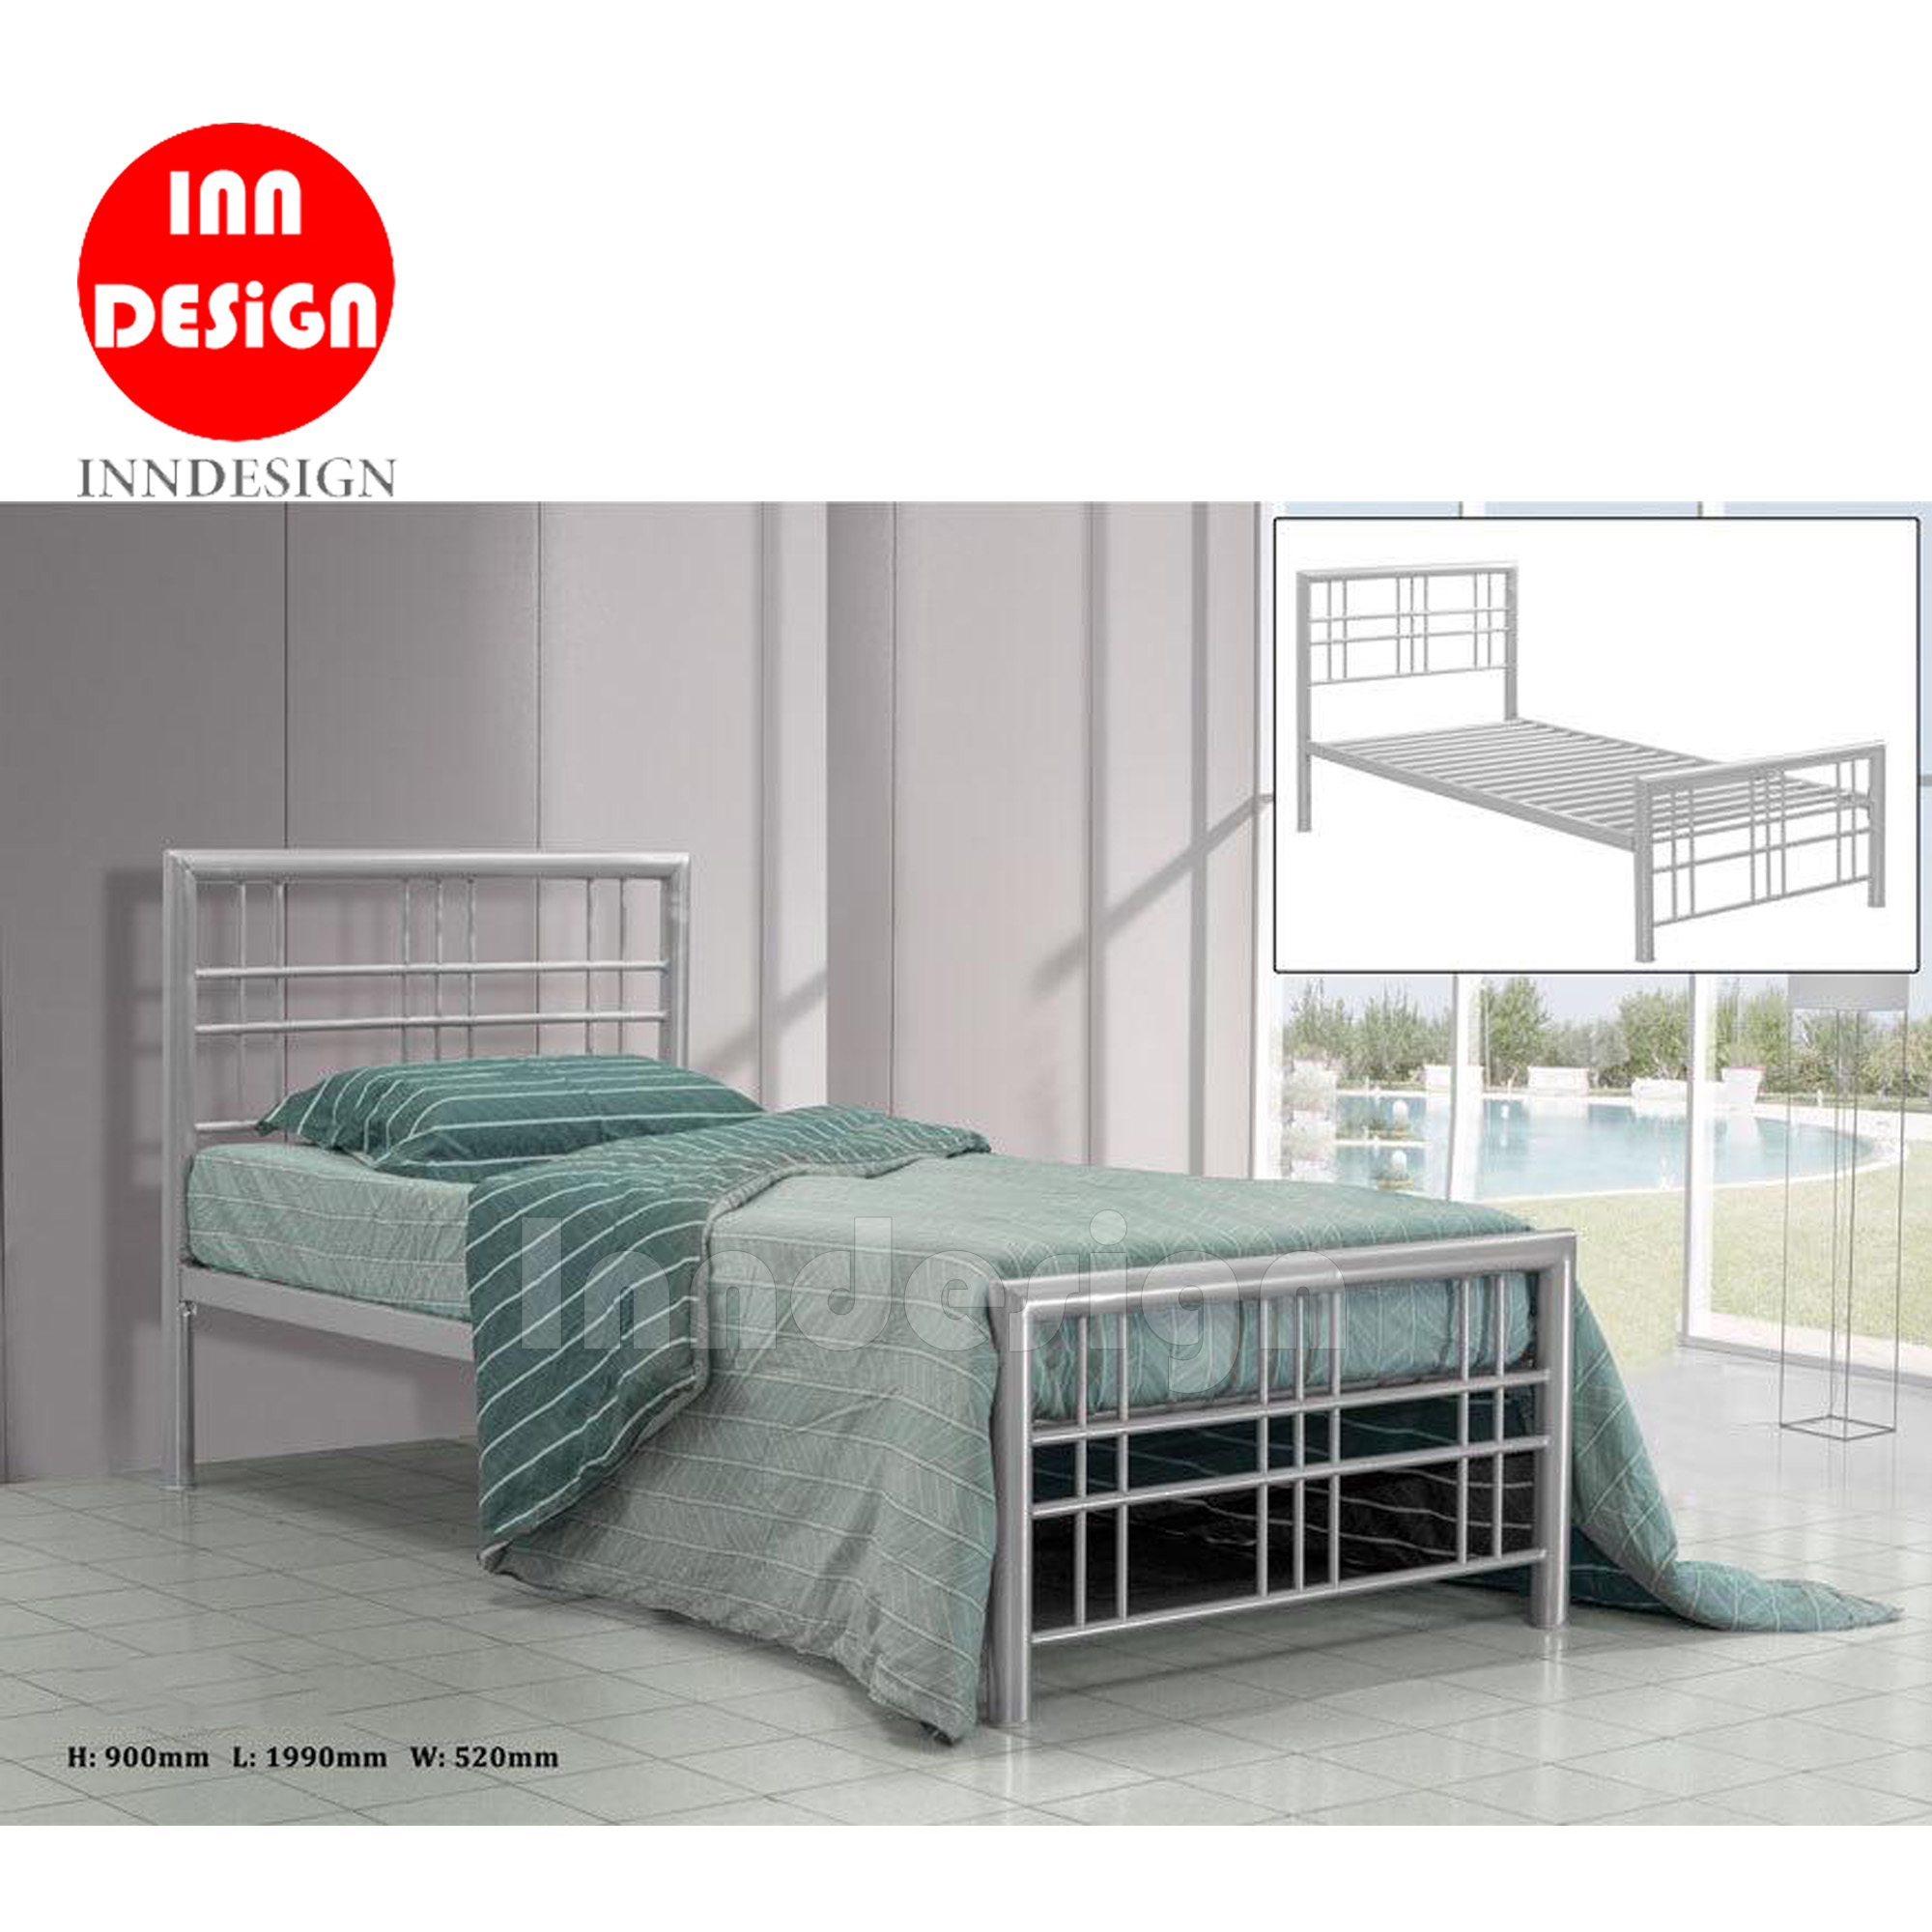 Lwen Single Metal Bedframe